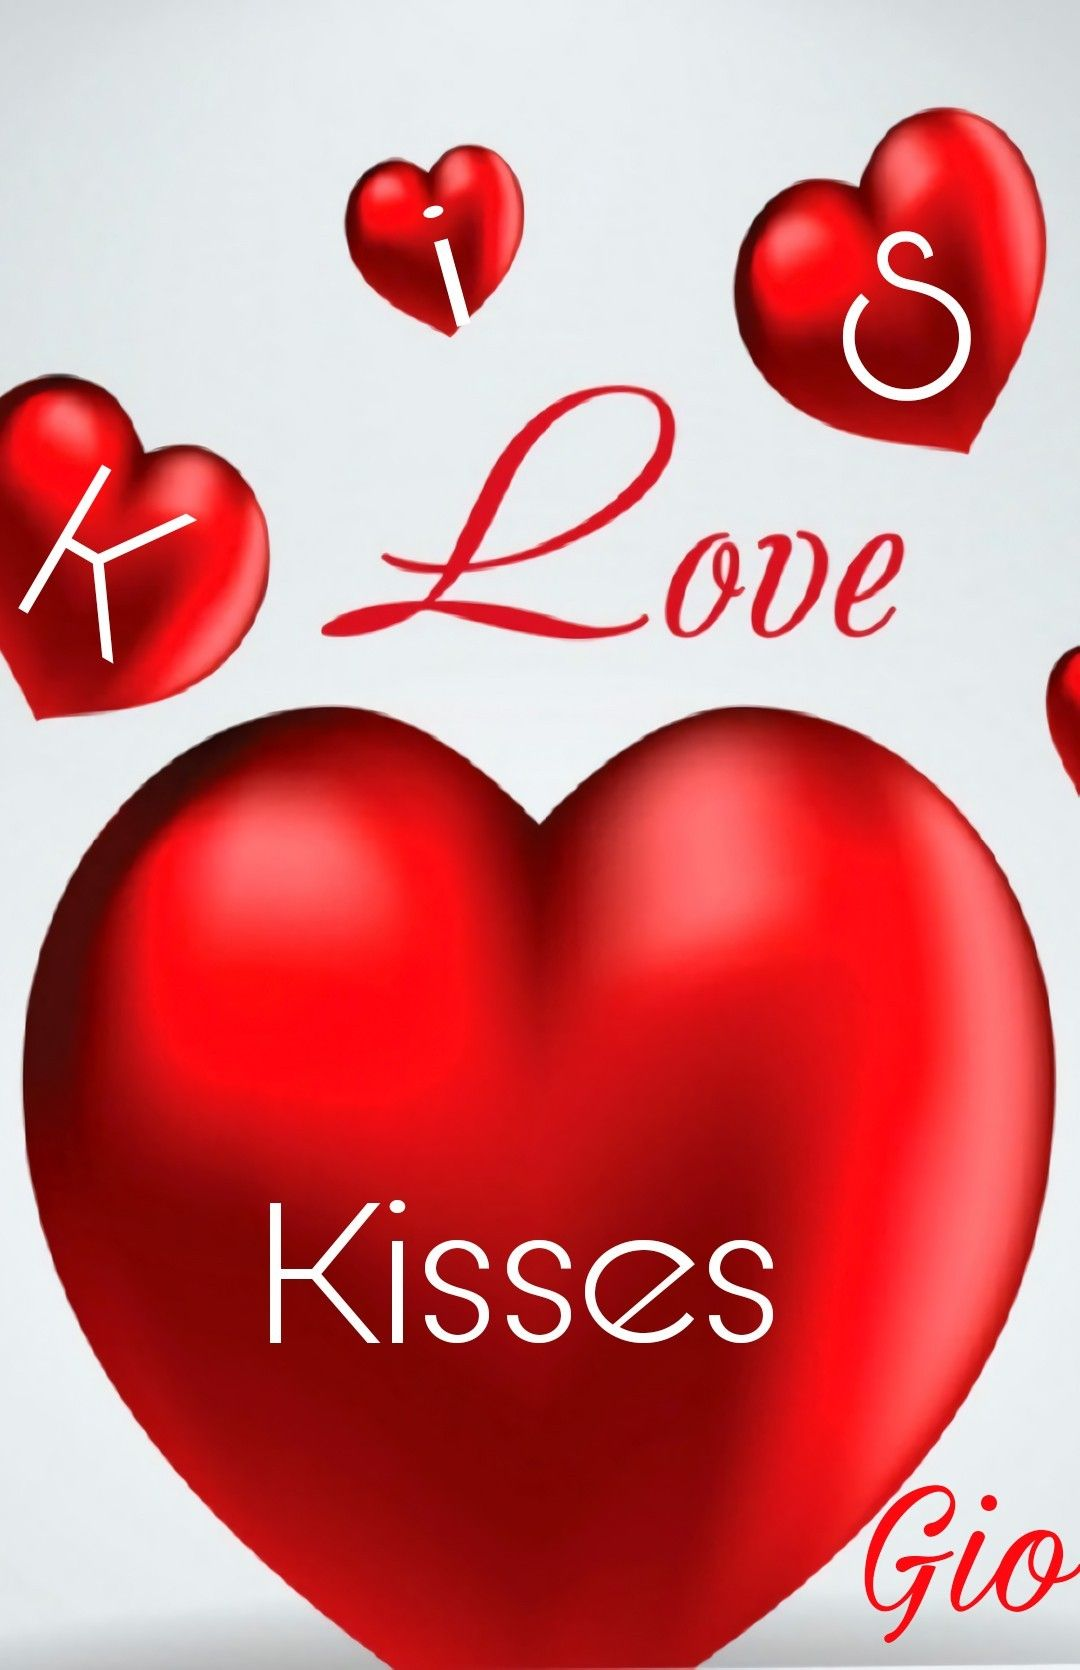 Kisses To All My Friend In Picsart Love Gio Kisses Heart